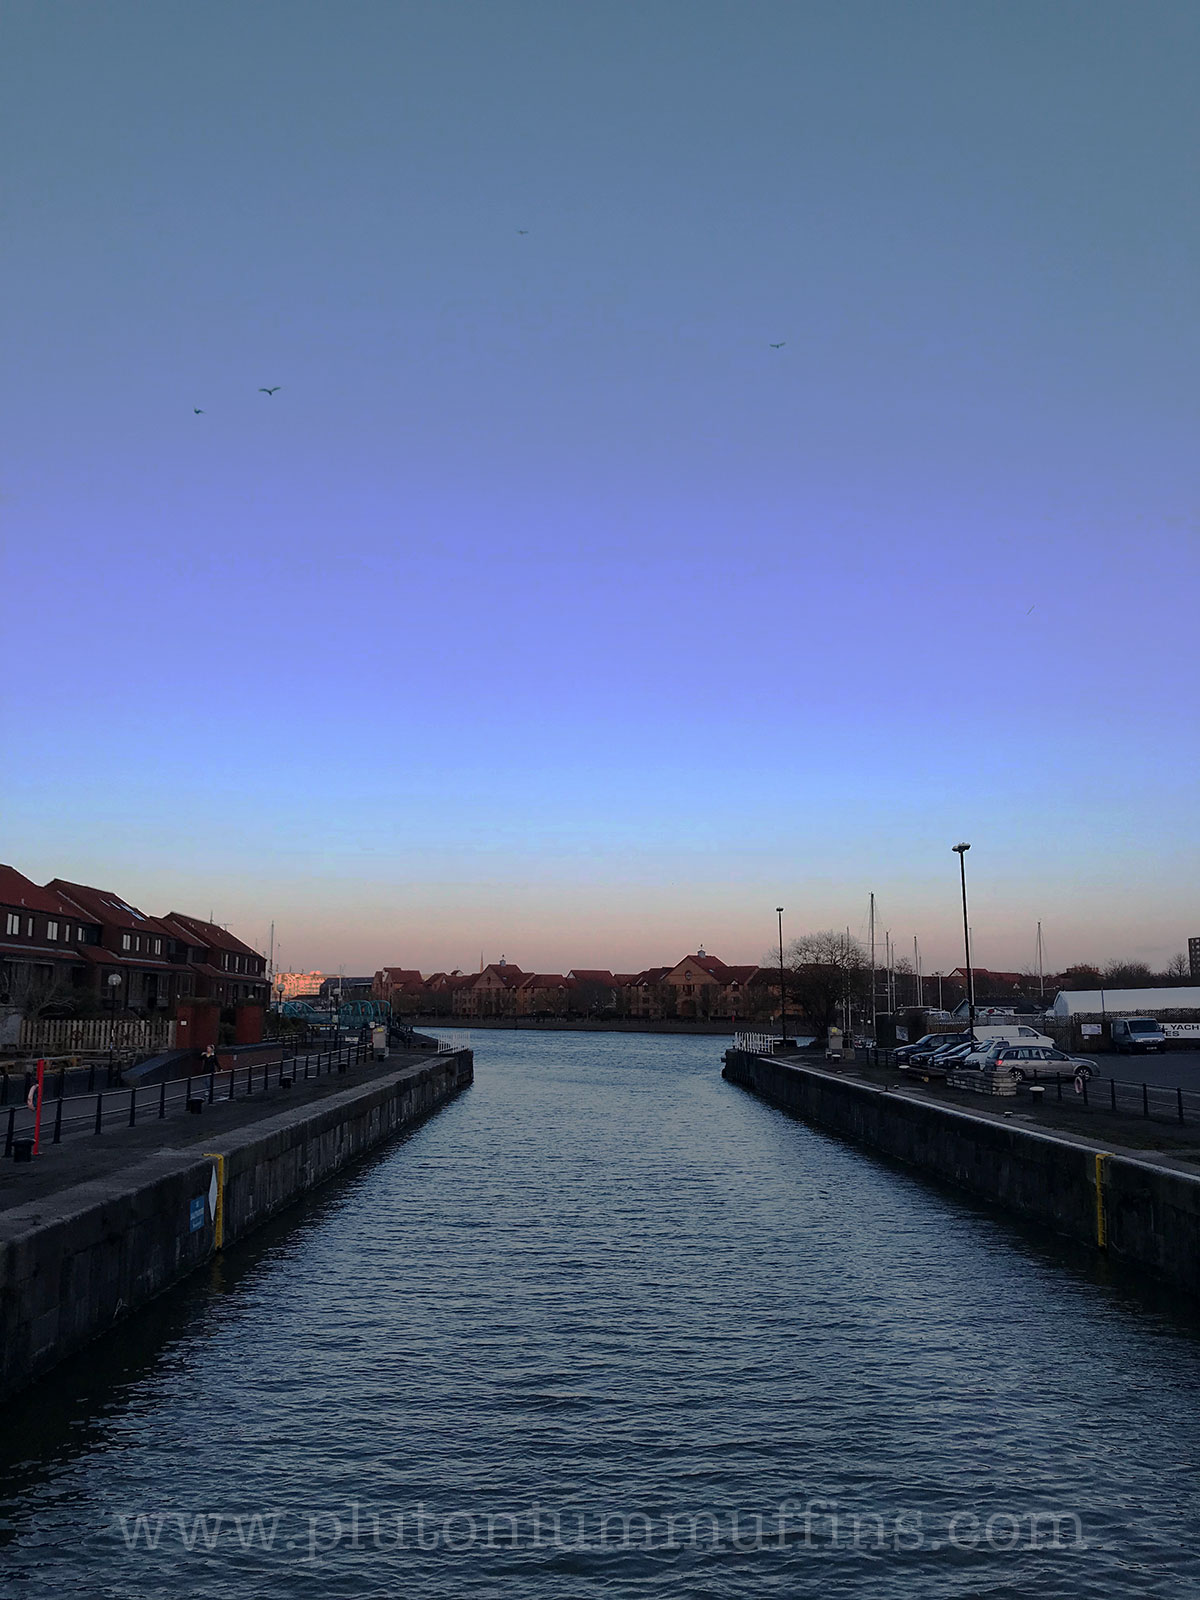 The lock this evening, photo grabbed as I ran past.